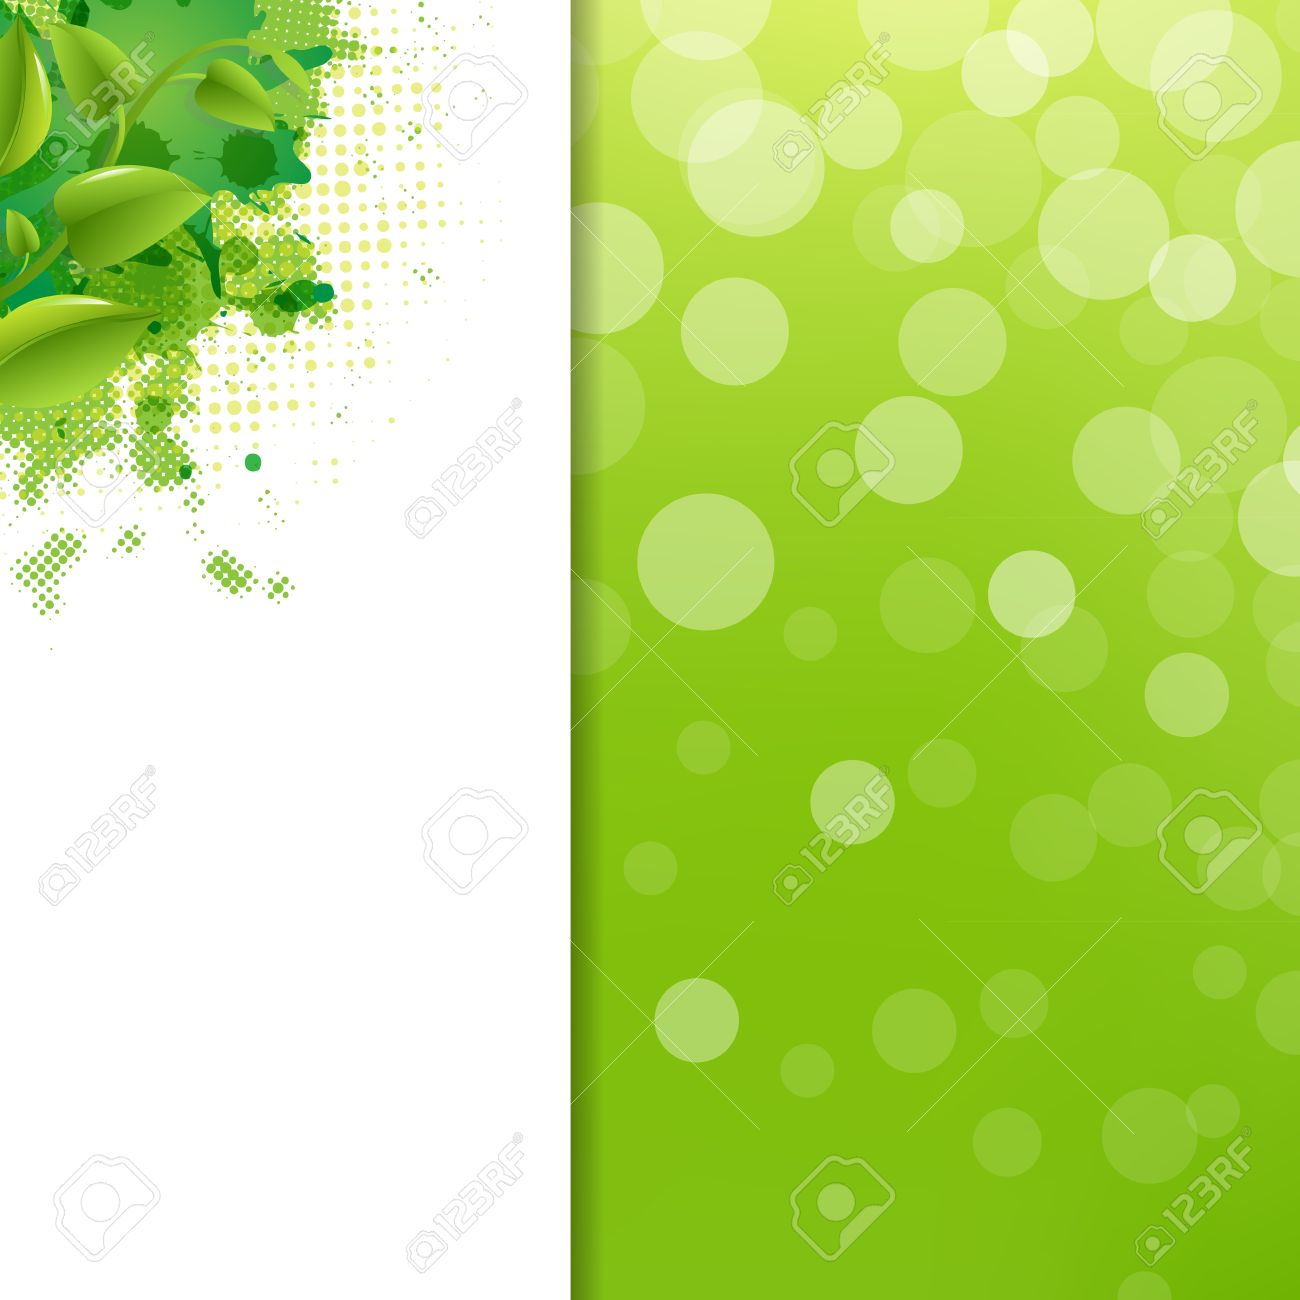 Green Eco Background With Blur And Blob, Illustration Stock Vector - 15069697